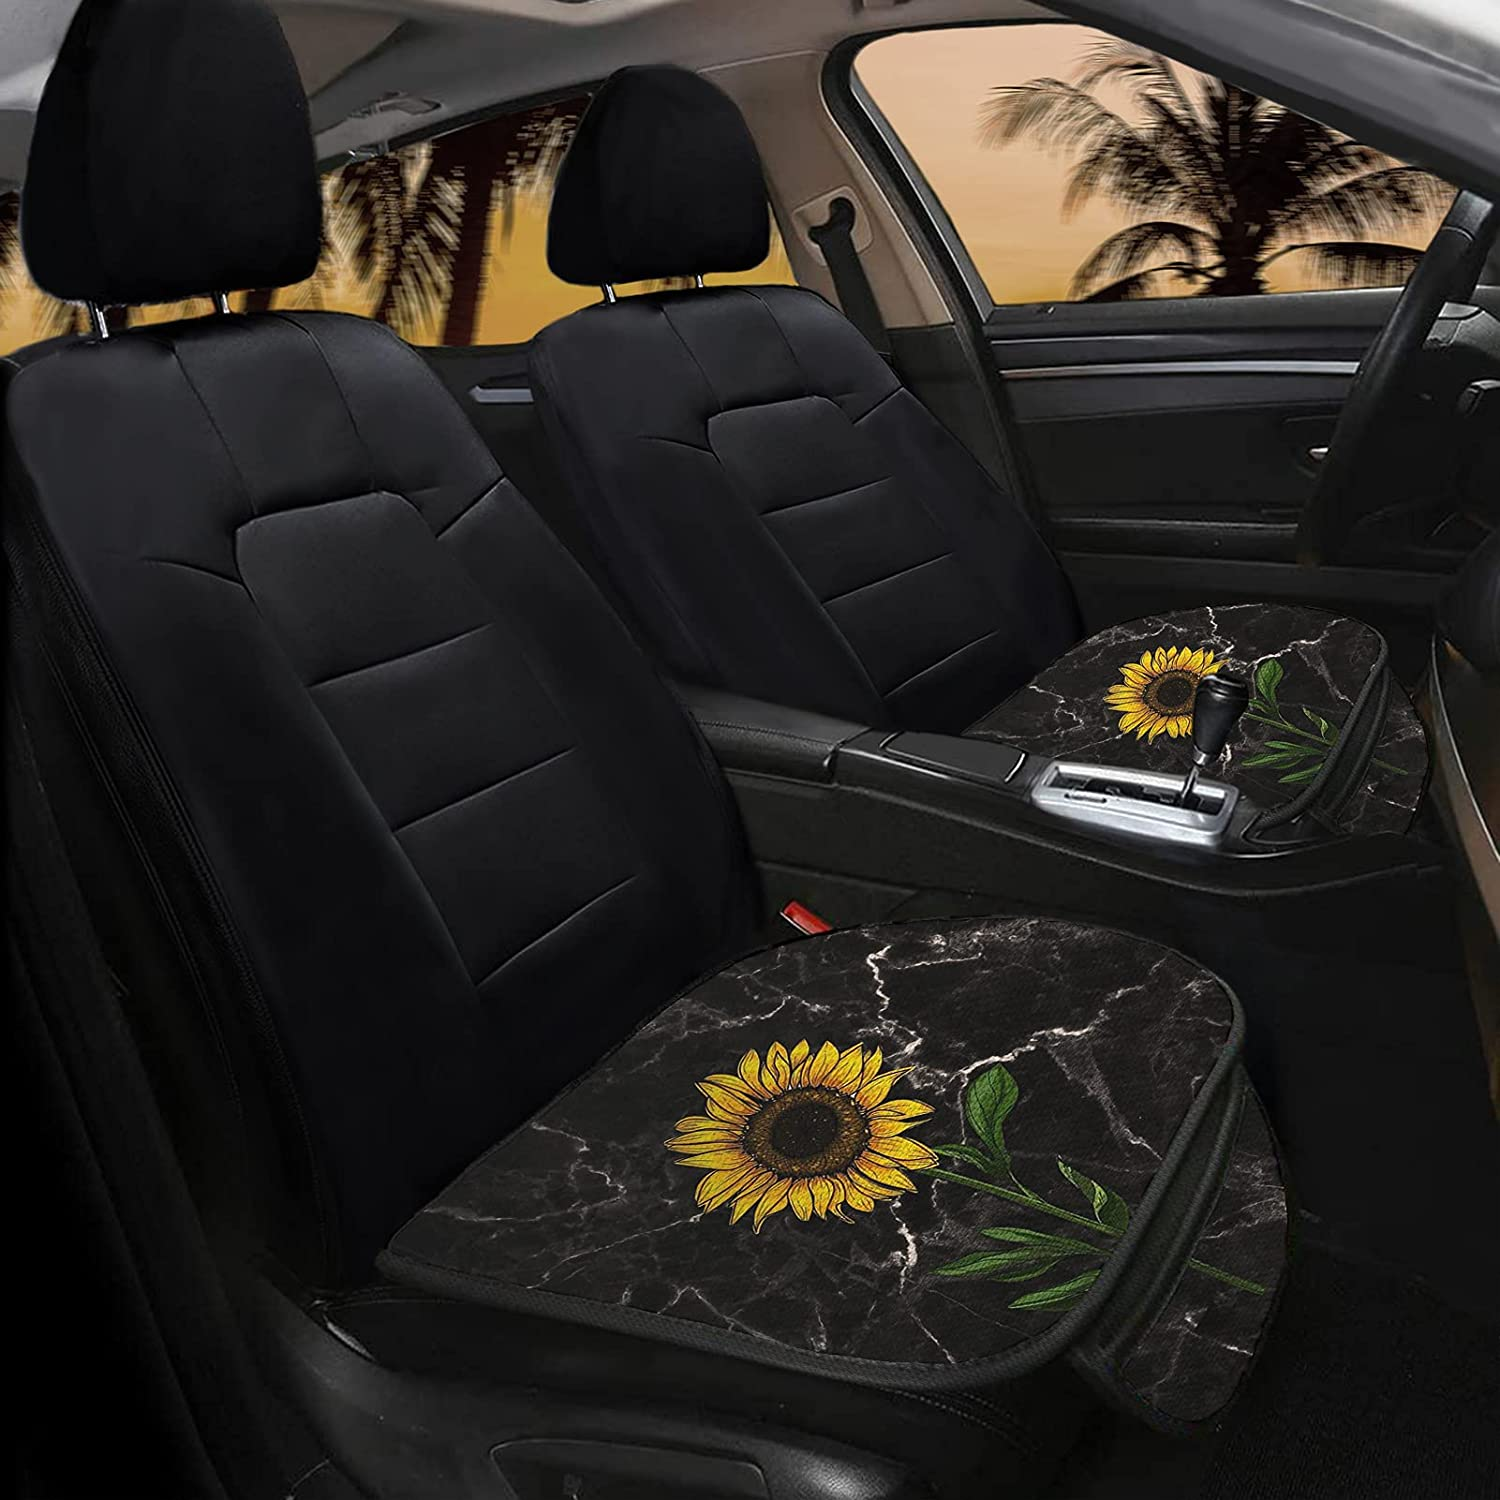 Yiekeluo Marble Sunflower Flower Pattern Car Seat Covers Full Set 2 Packs Auto Front Seat Bottom Protector Pad for Most Vehicles